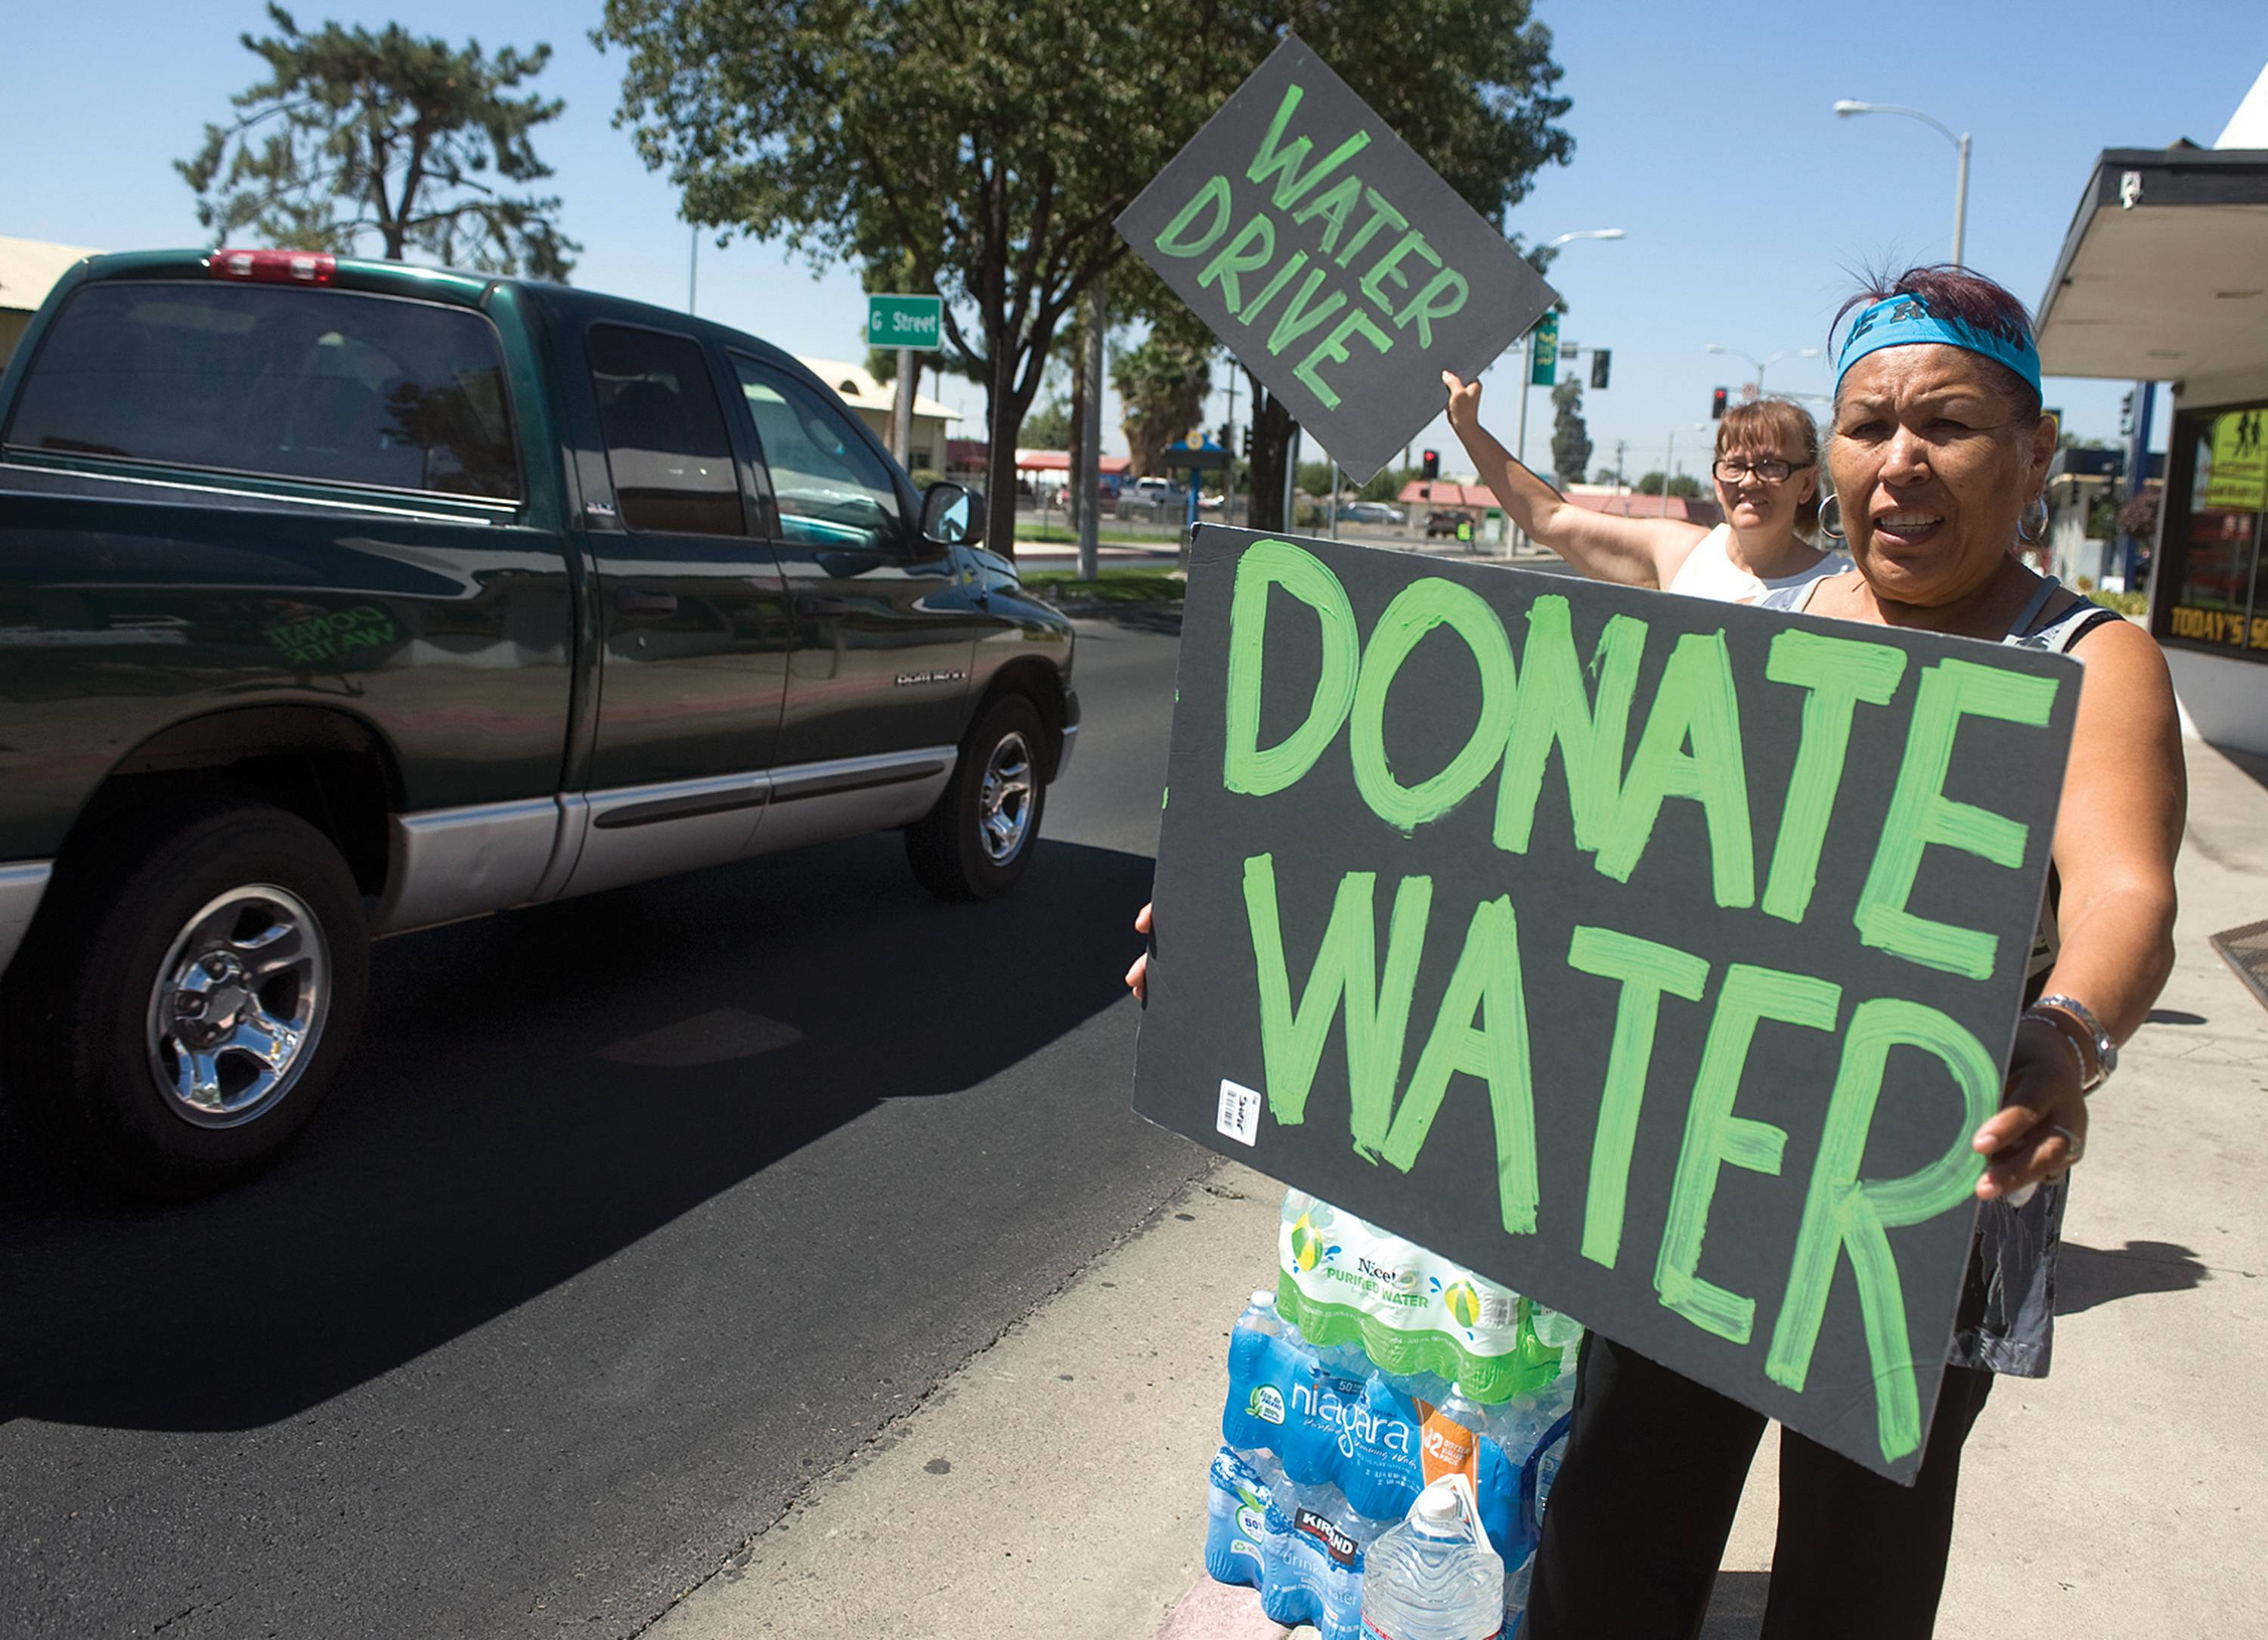 Volunteers appeal to community members for donations at the Porterville Water Challenge on Olive Street in Porterville, Calif. Several locals started their own water challenges to help East Porterville area residents whose wells went dry for months.